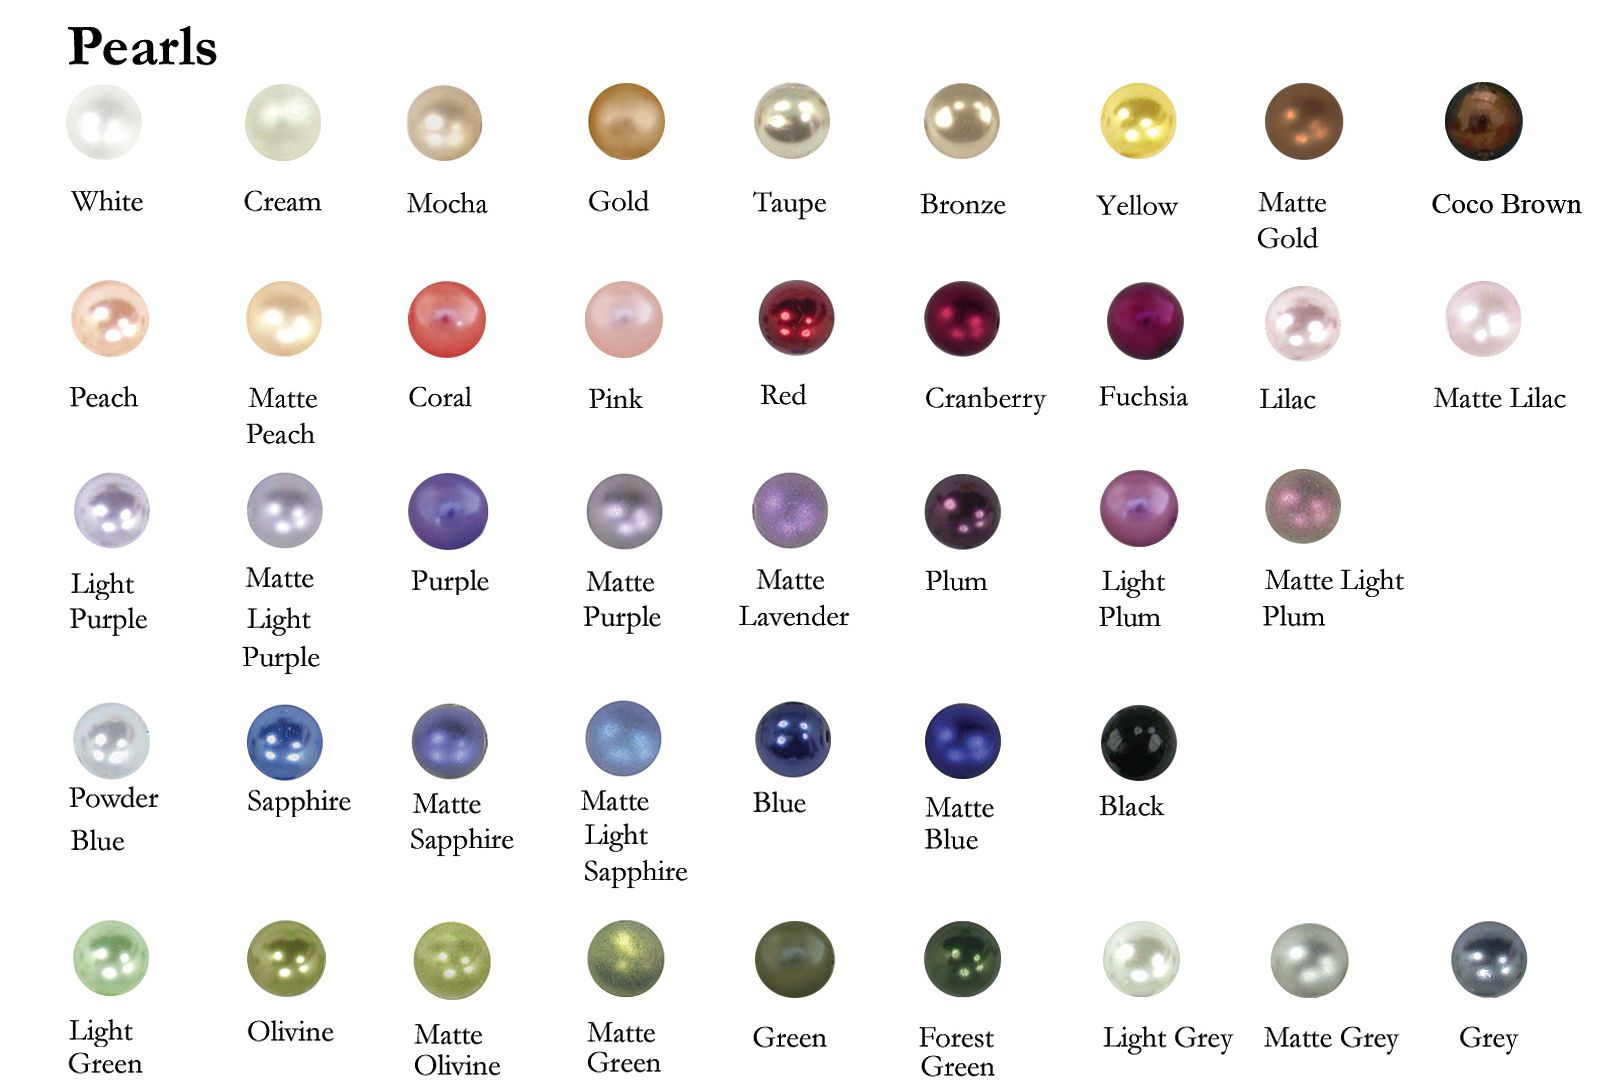 Image From Http Www 2 Be Unique Com Images Charts Pearl Color Chart Full Jpg Pearl Color Pearl Steven Pearls